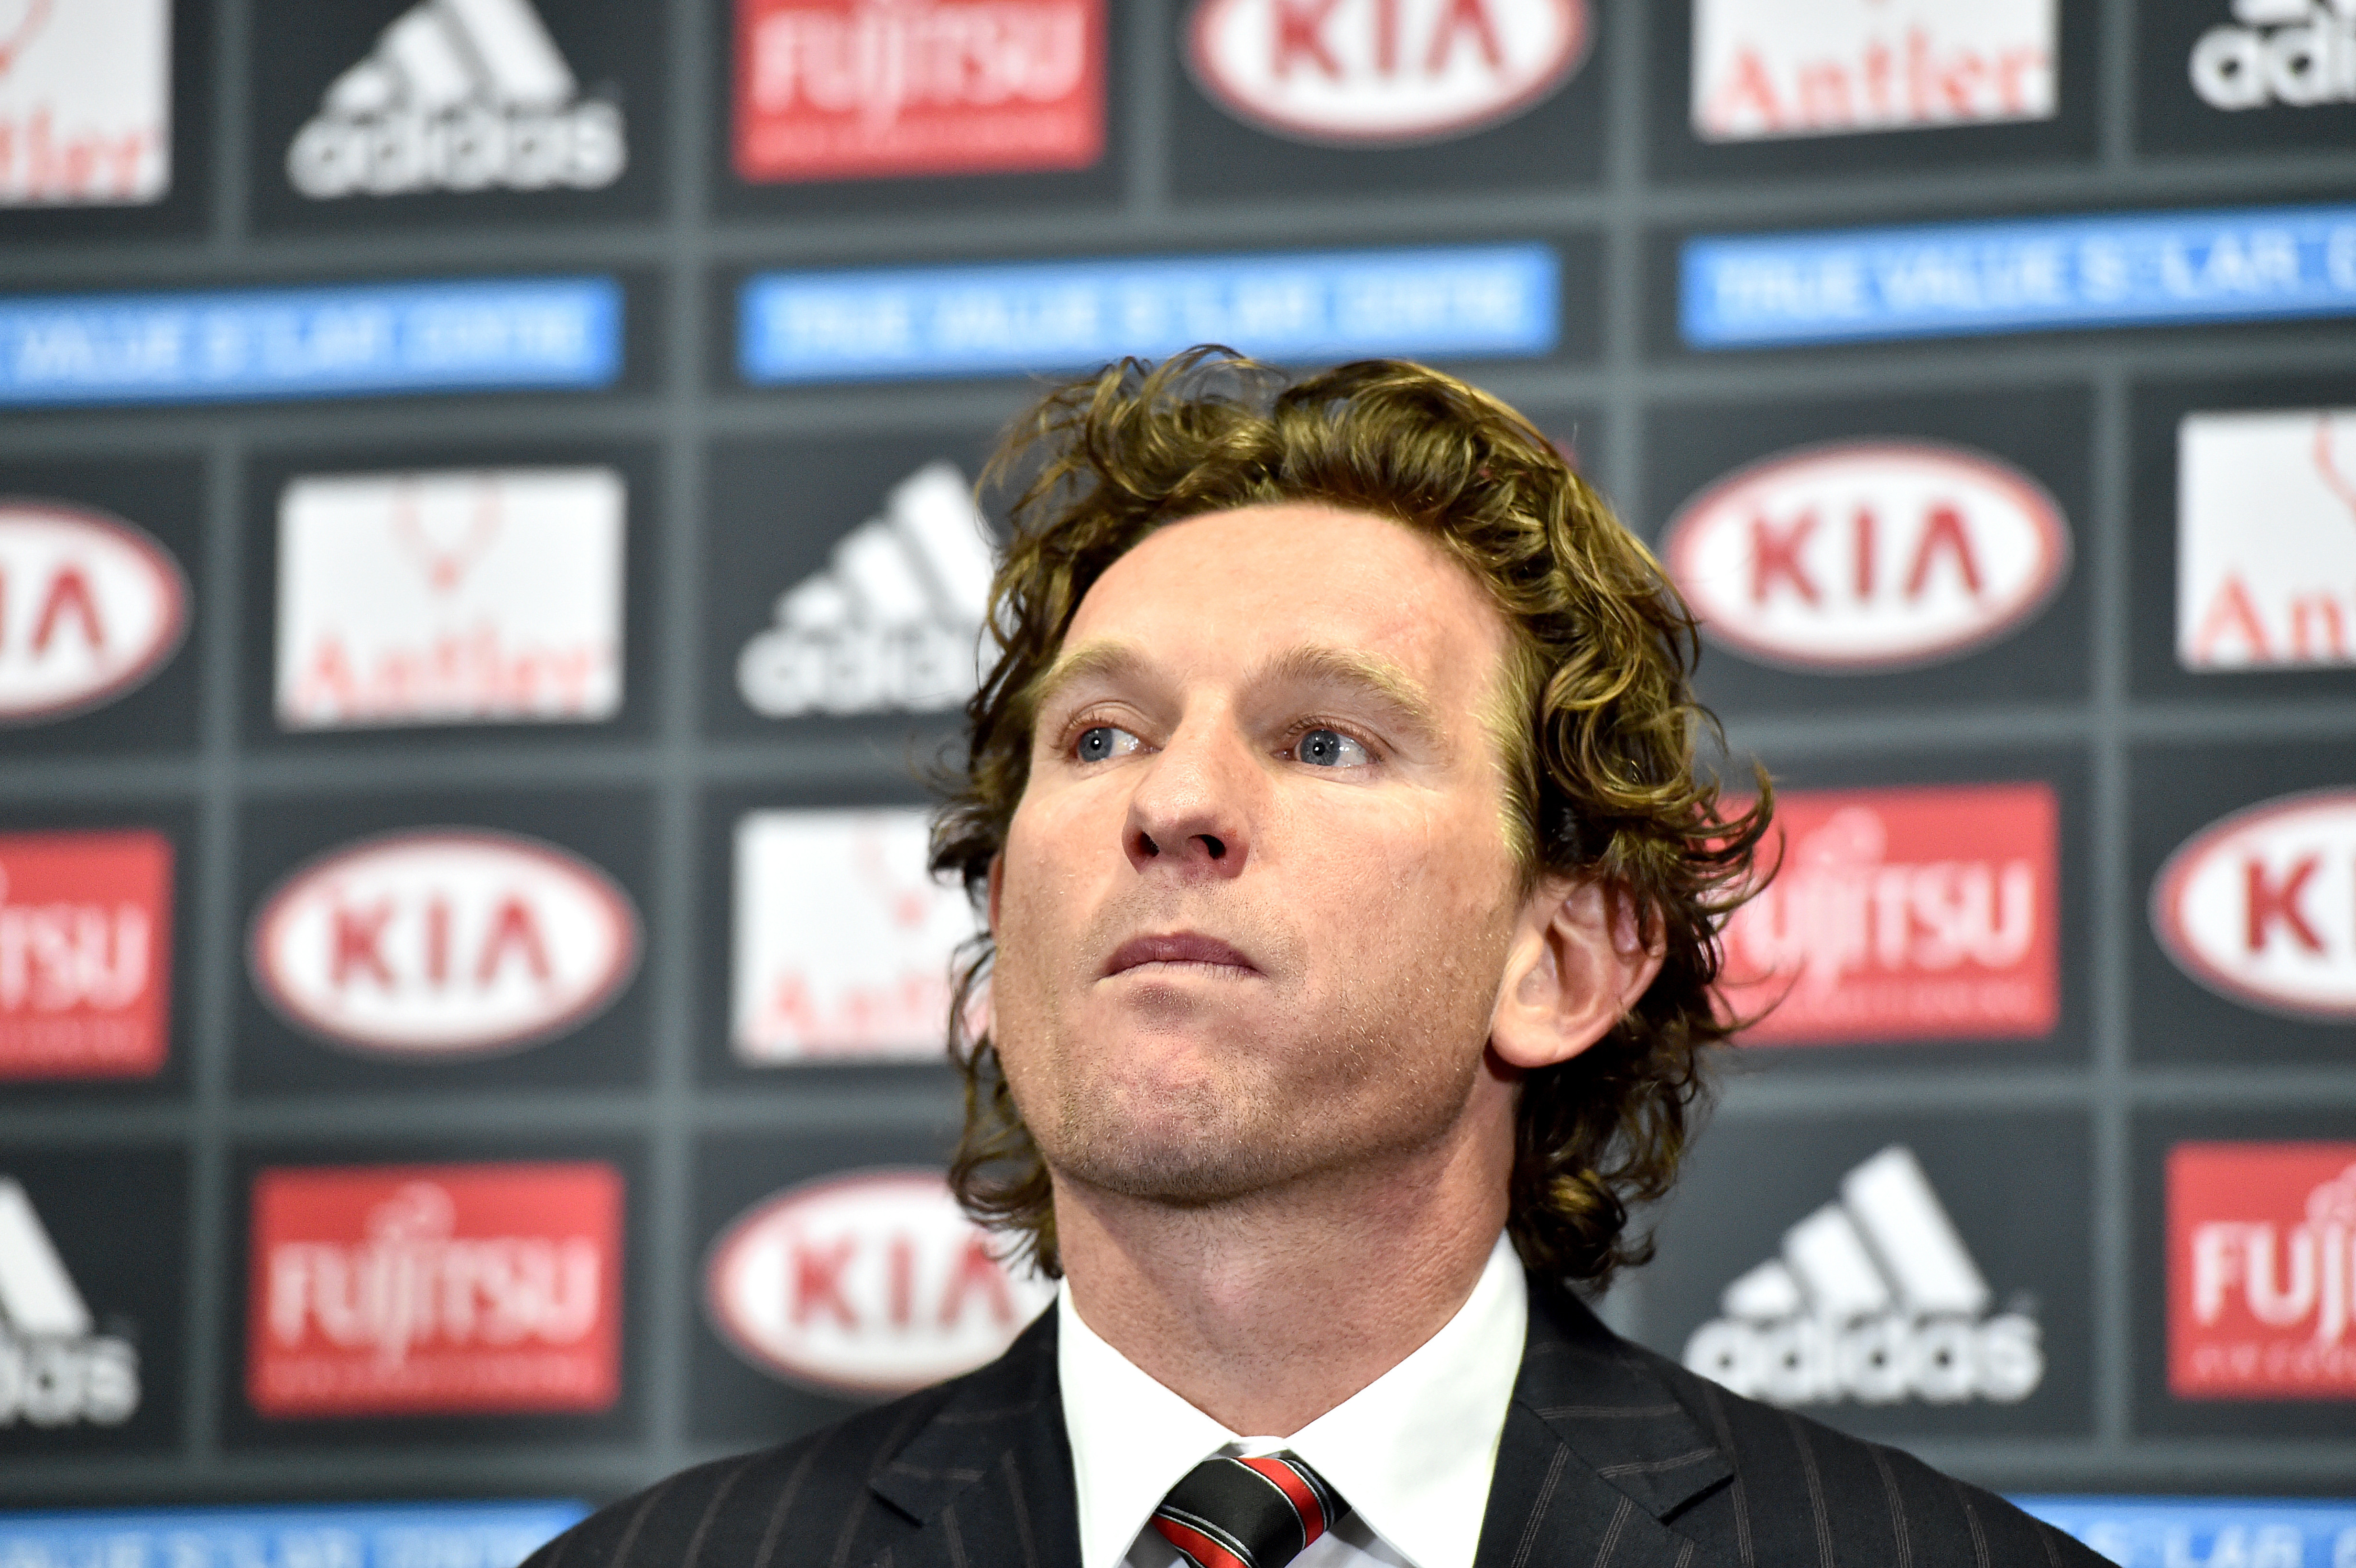 The Hird interview: Why we should focus on the flock